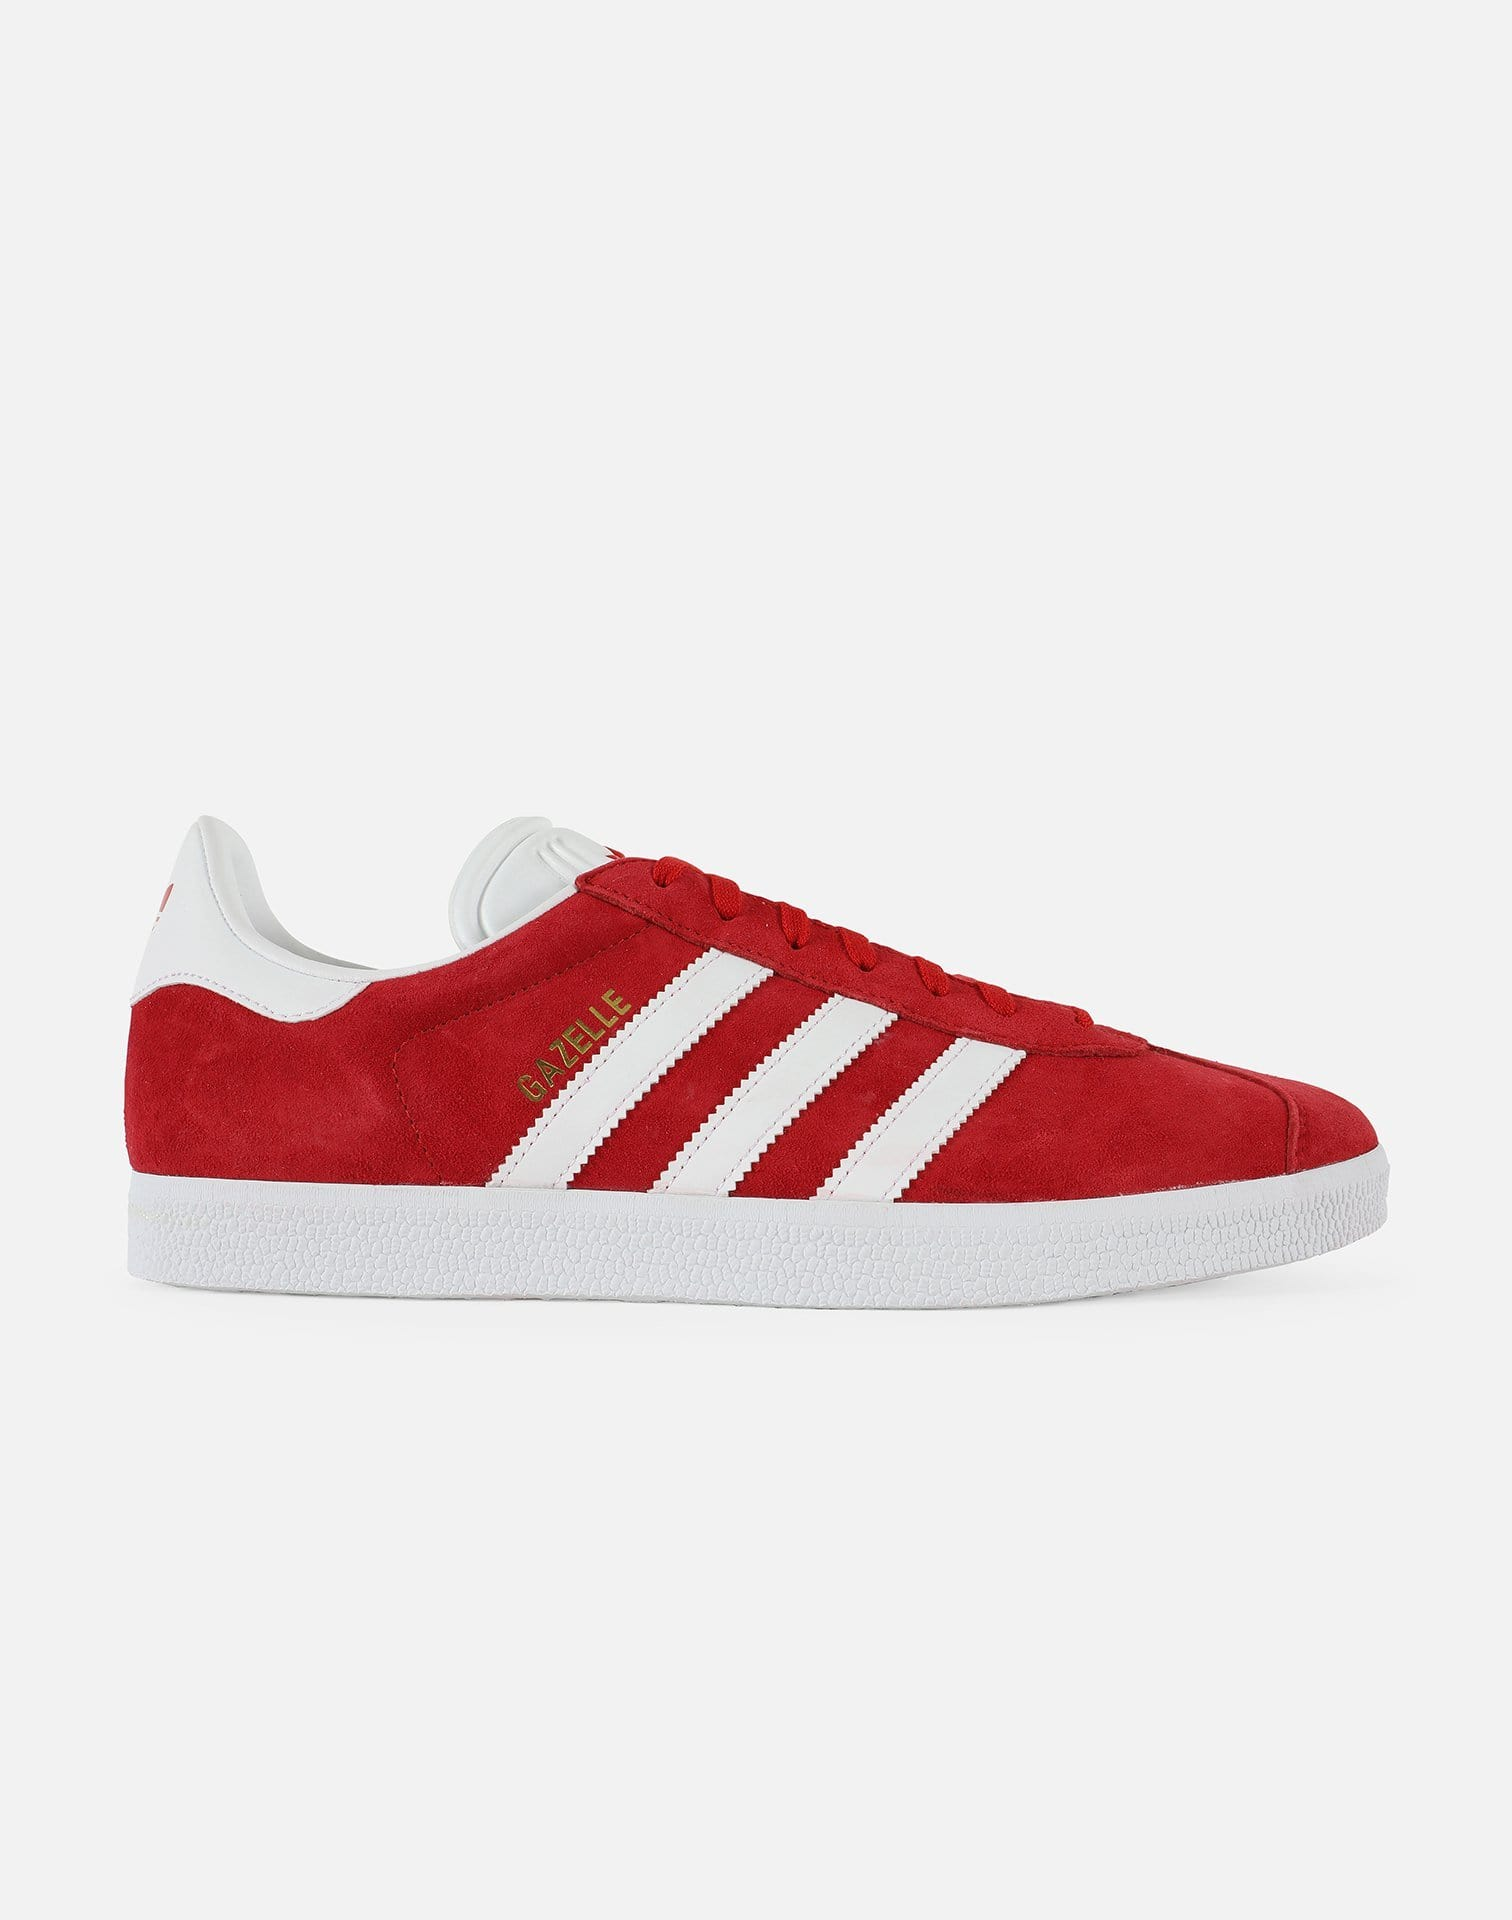 adidas Gazelle (Scarlet/Footwear White-Gold Metallic)